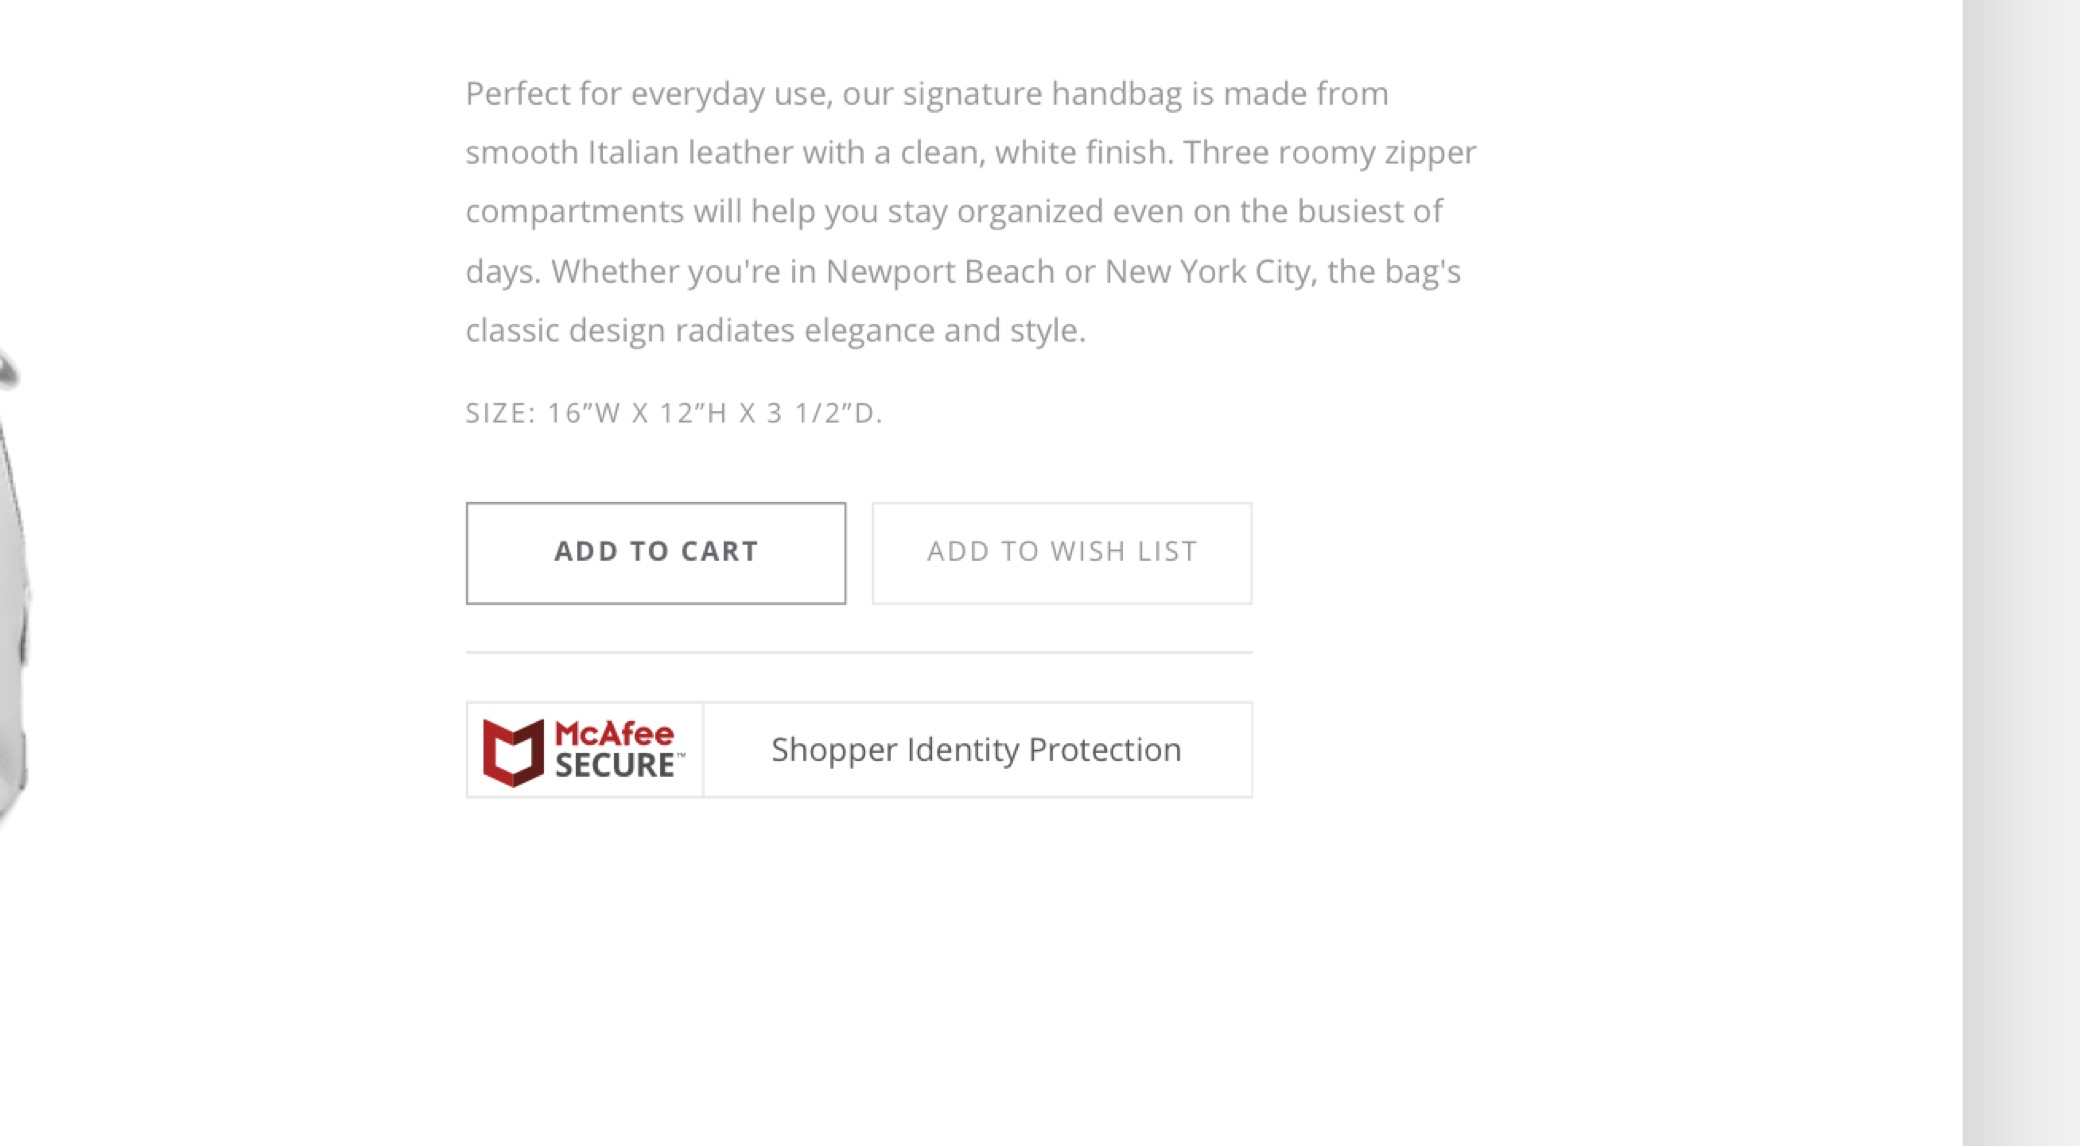 shopper_identity_protection_trustmark